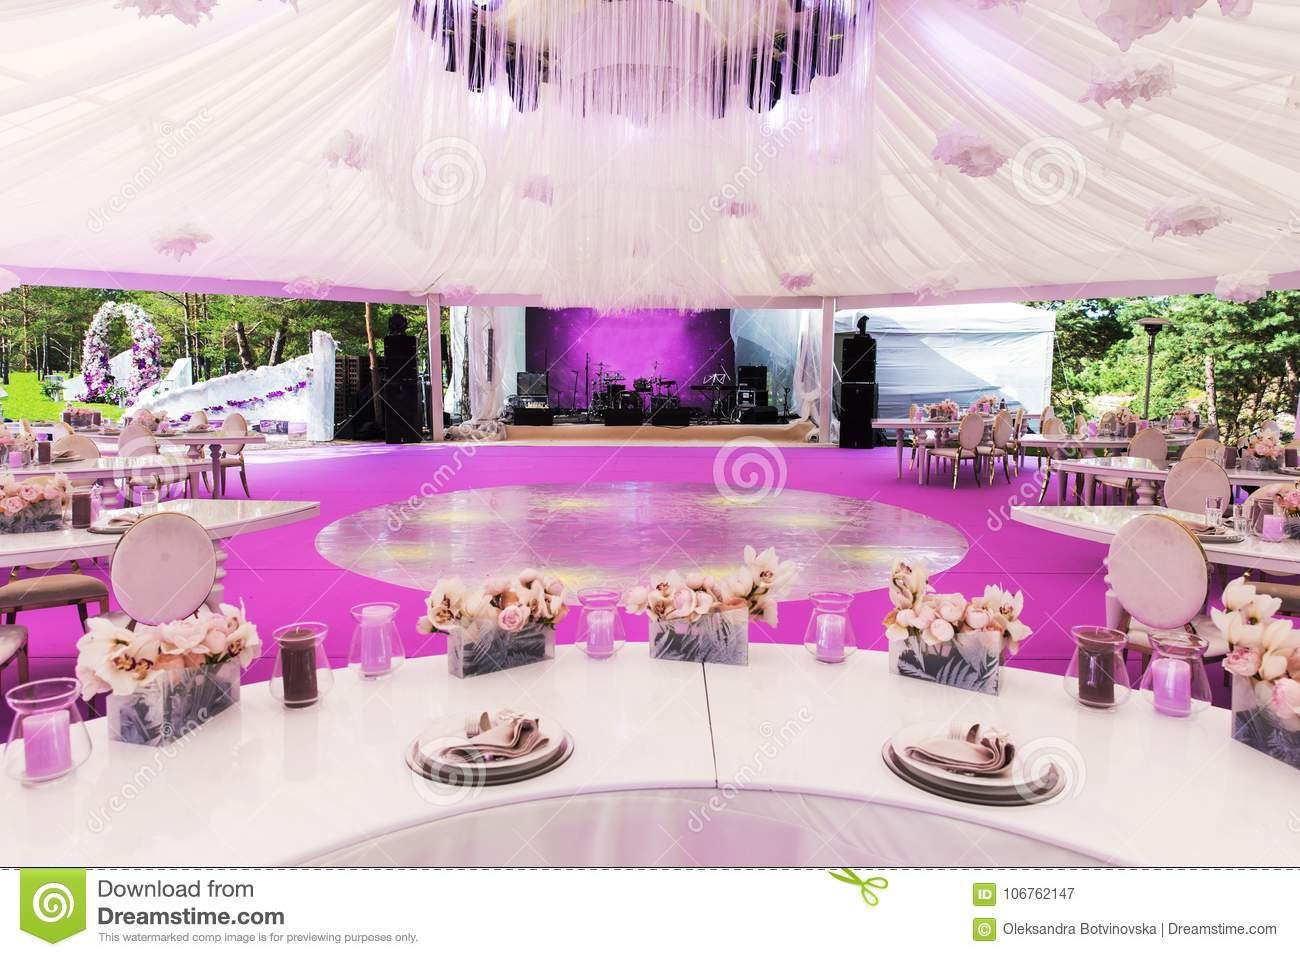 Table Set For Wedding Or Another Catered Event Dinner And Large ...